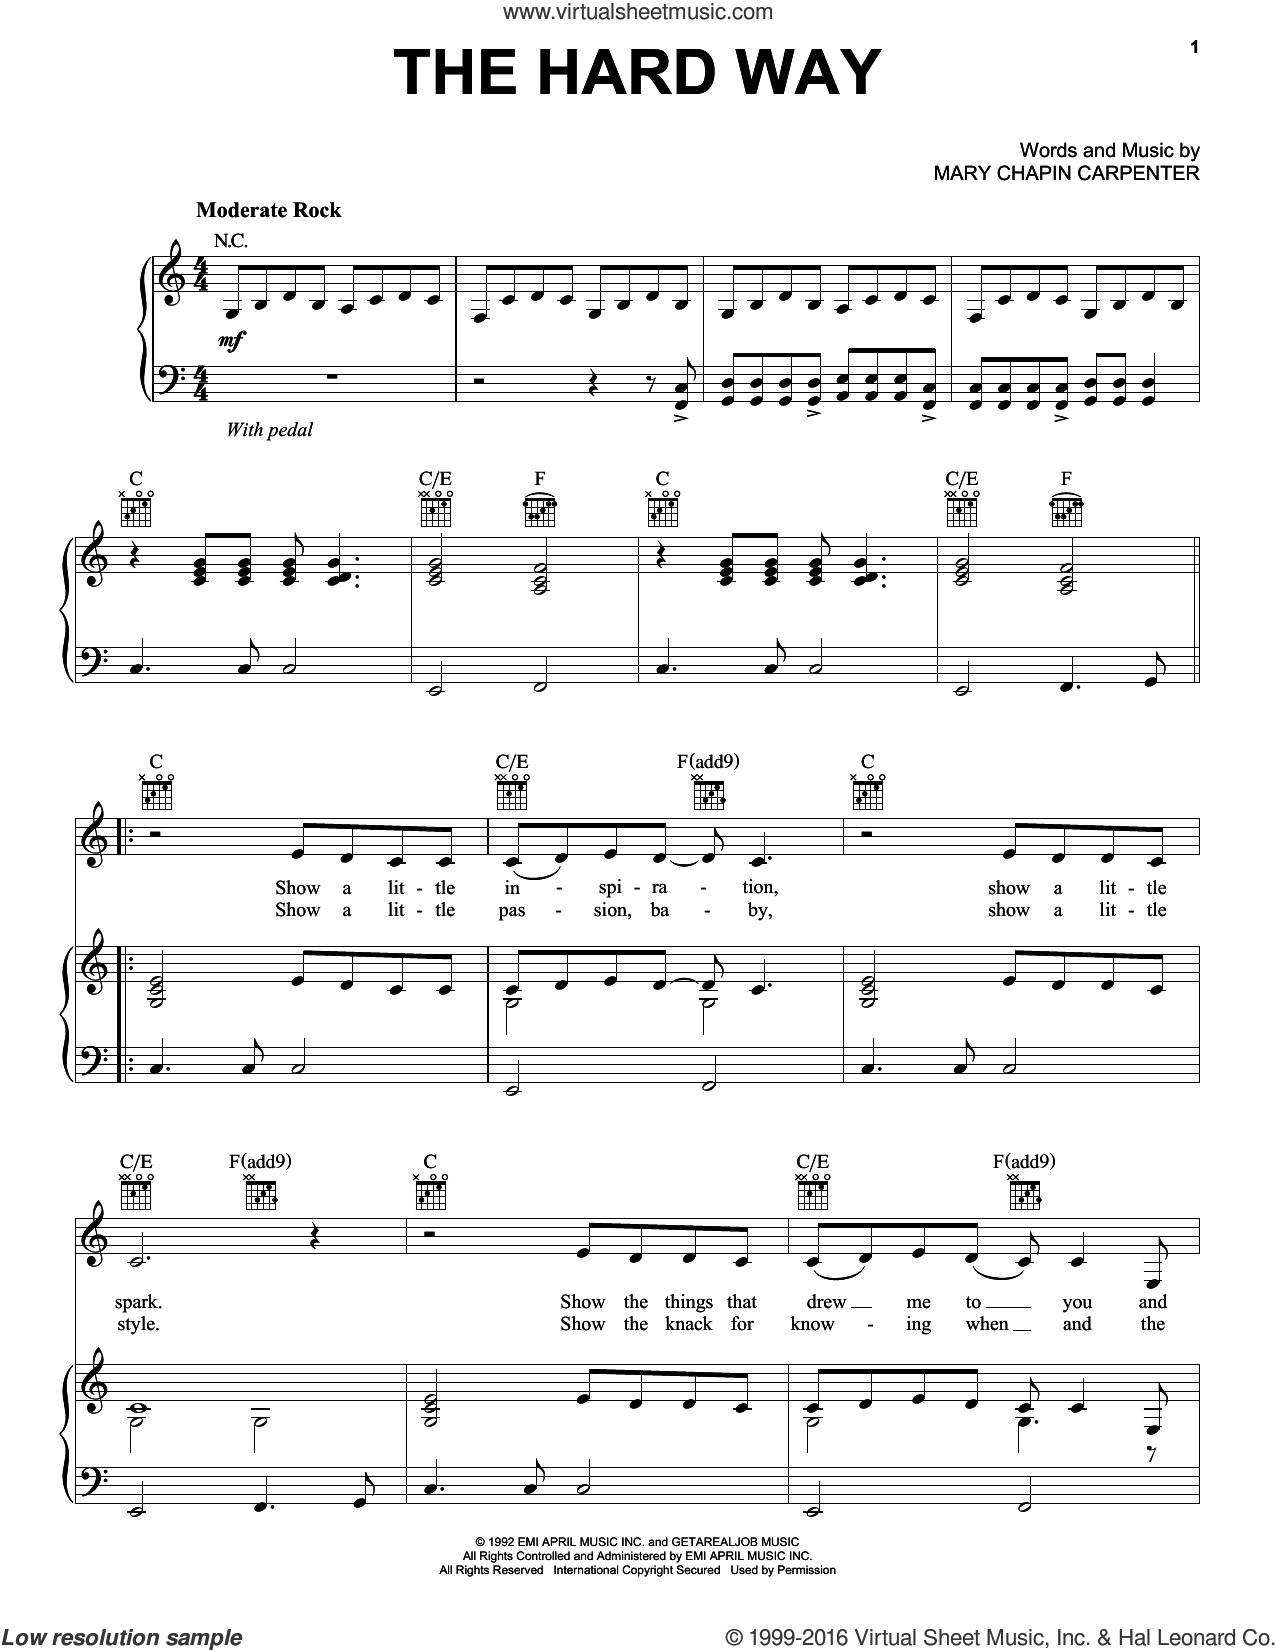 The Hard Way sheet music for voice, piano or guitar by Mary Chapin Carpenter. Score Image Preview.